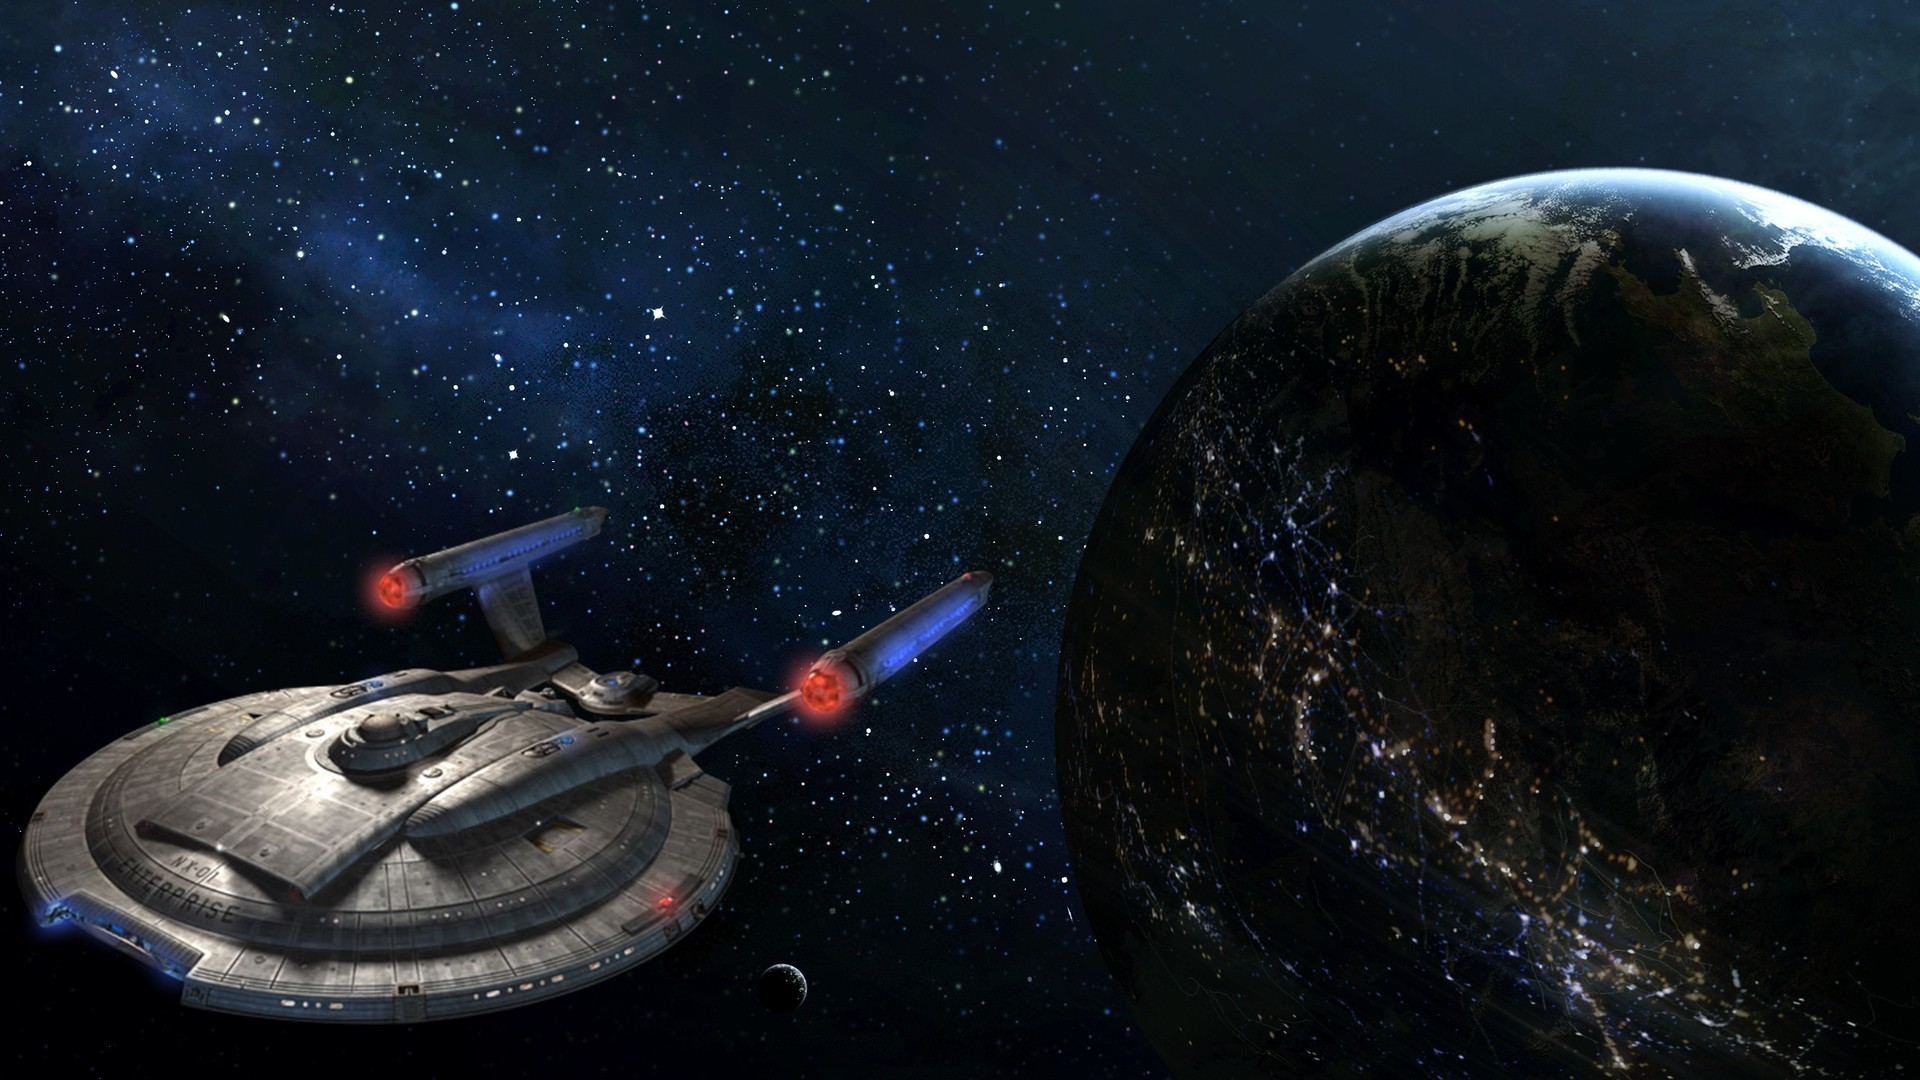 1920x1080 Star Trek: Enterprise HD Wallpaper | Background Image |  |  ID:789957 - Wallpaper Abyss